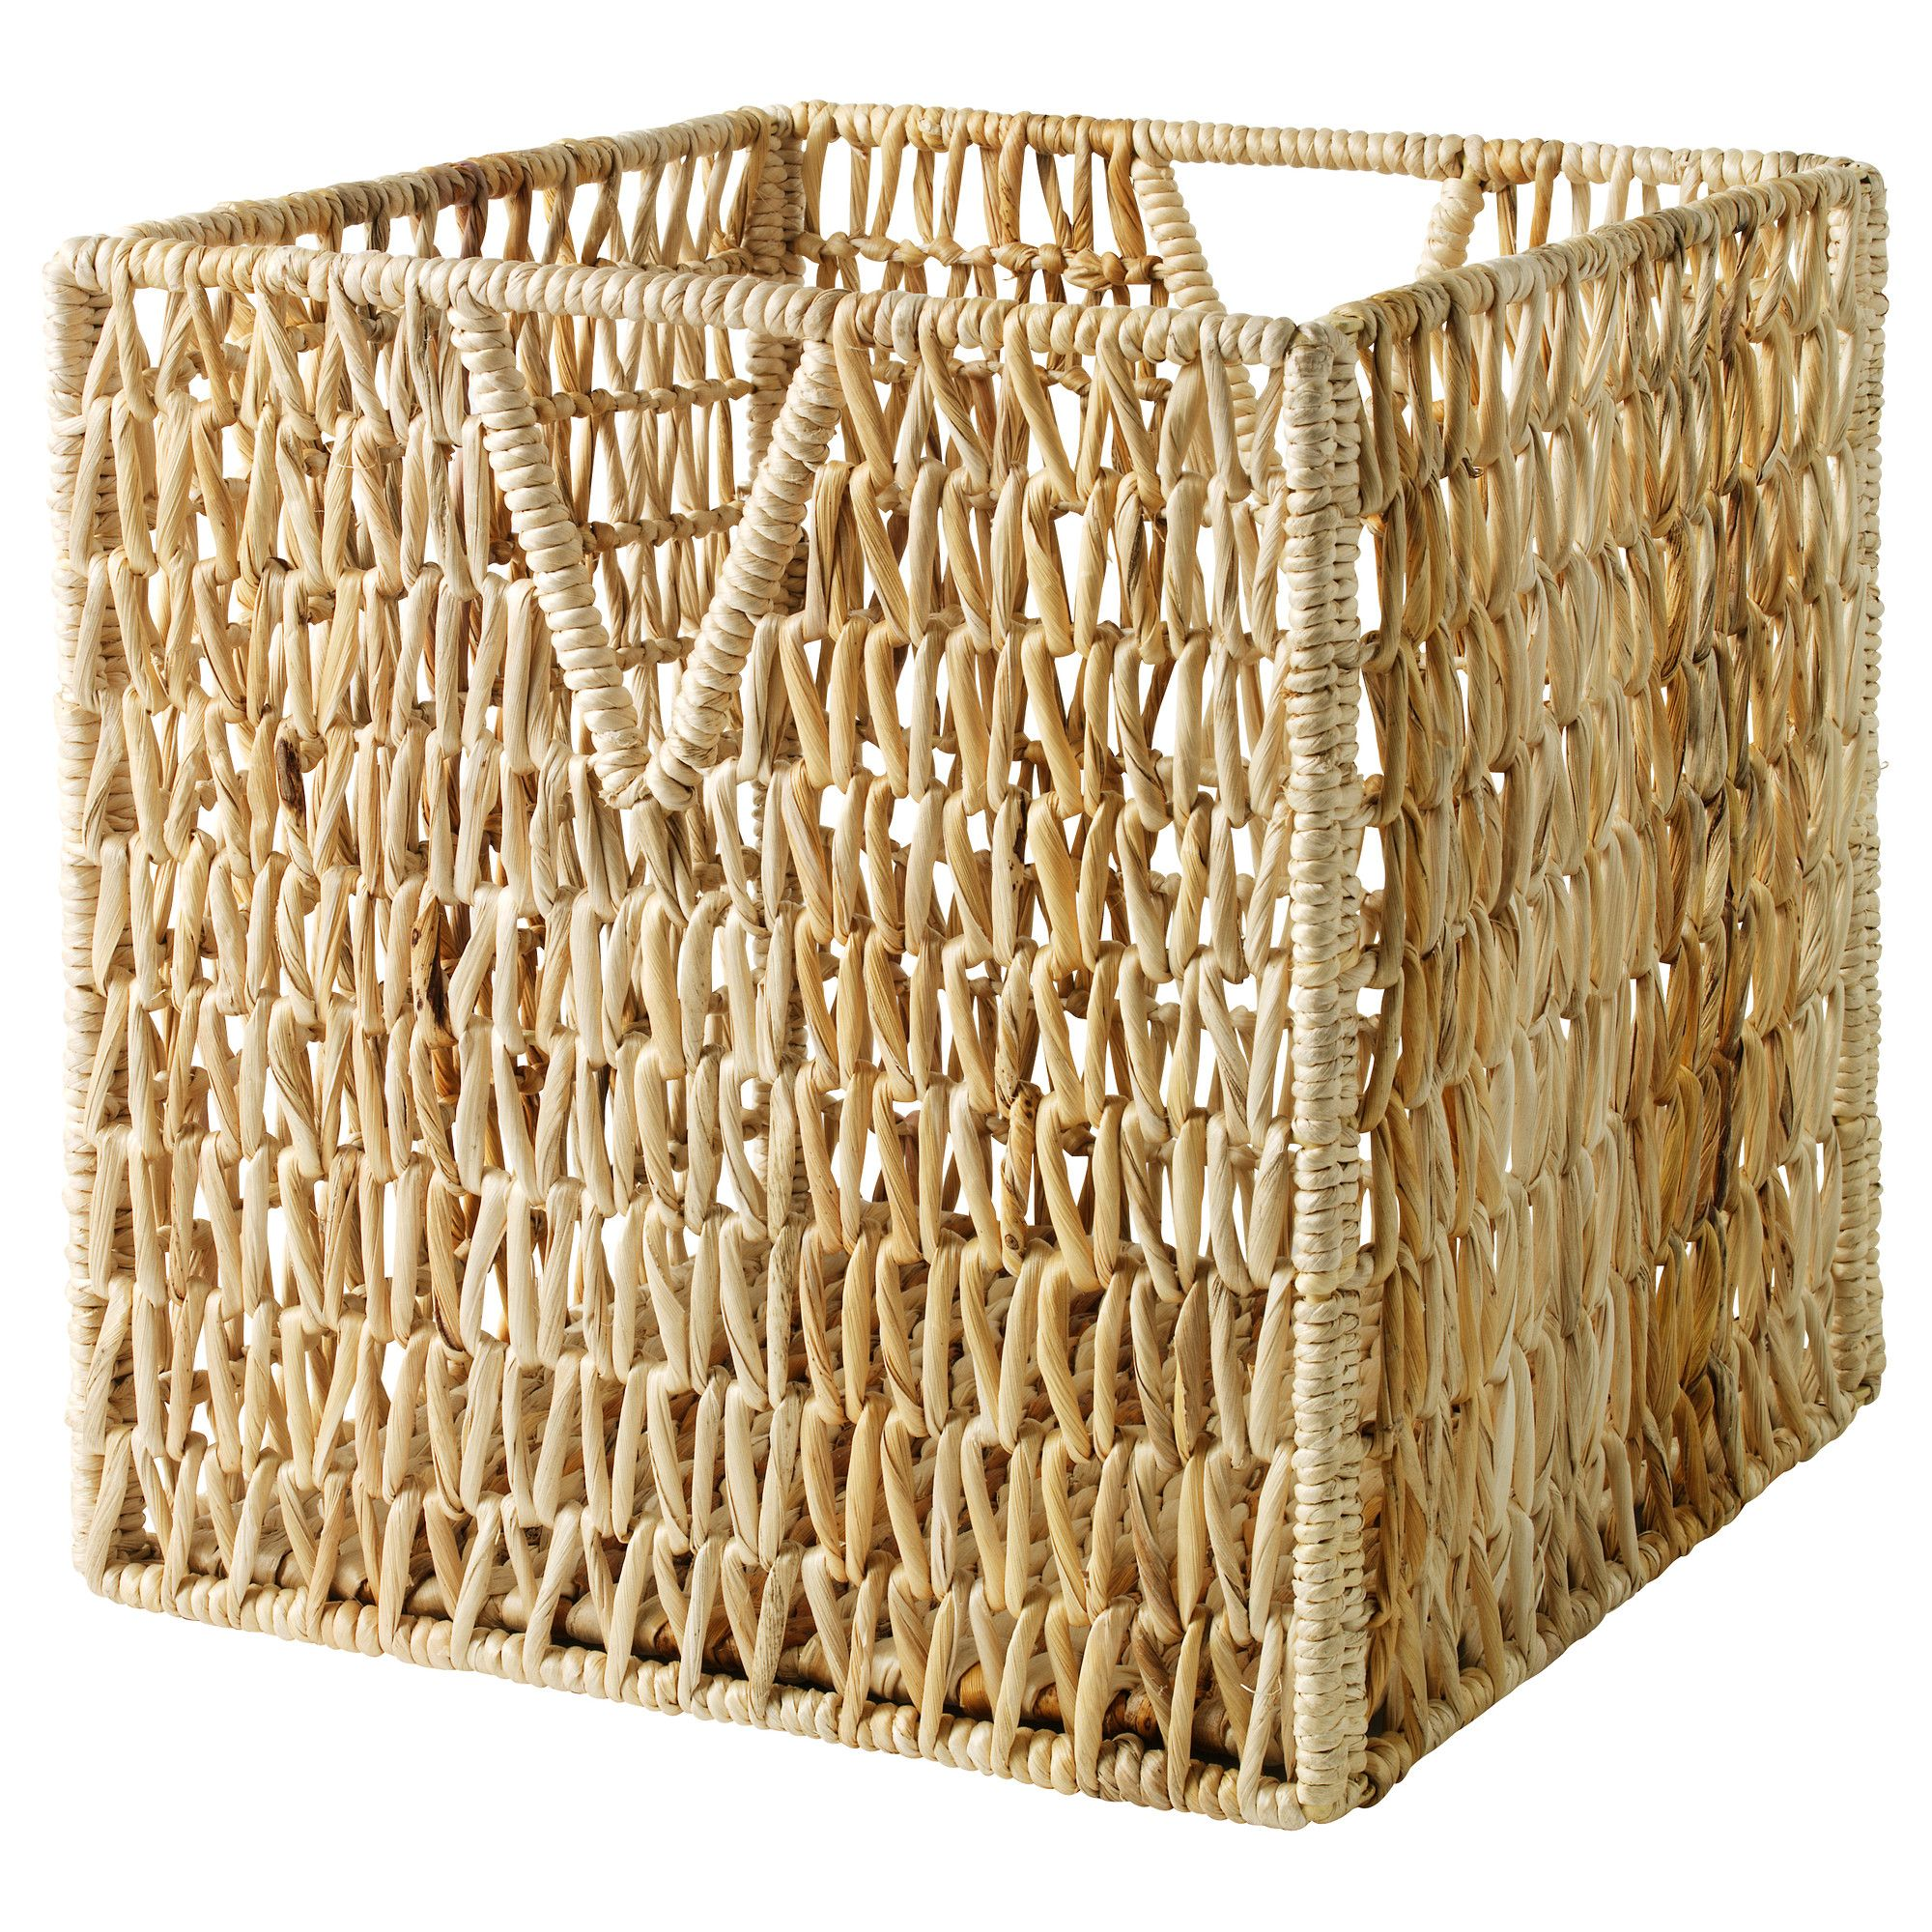 storage furniture with baskets ikea. PJÄS Basket - IKEA These Fit In The Cubicles Of Expedit Bookcases And Do A Great Job Concealing Messy Stuff Like Filing That Needs To Be Done! Storage Furniture With Baskets Ikea R